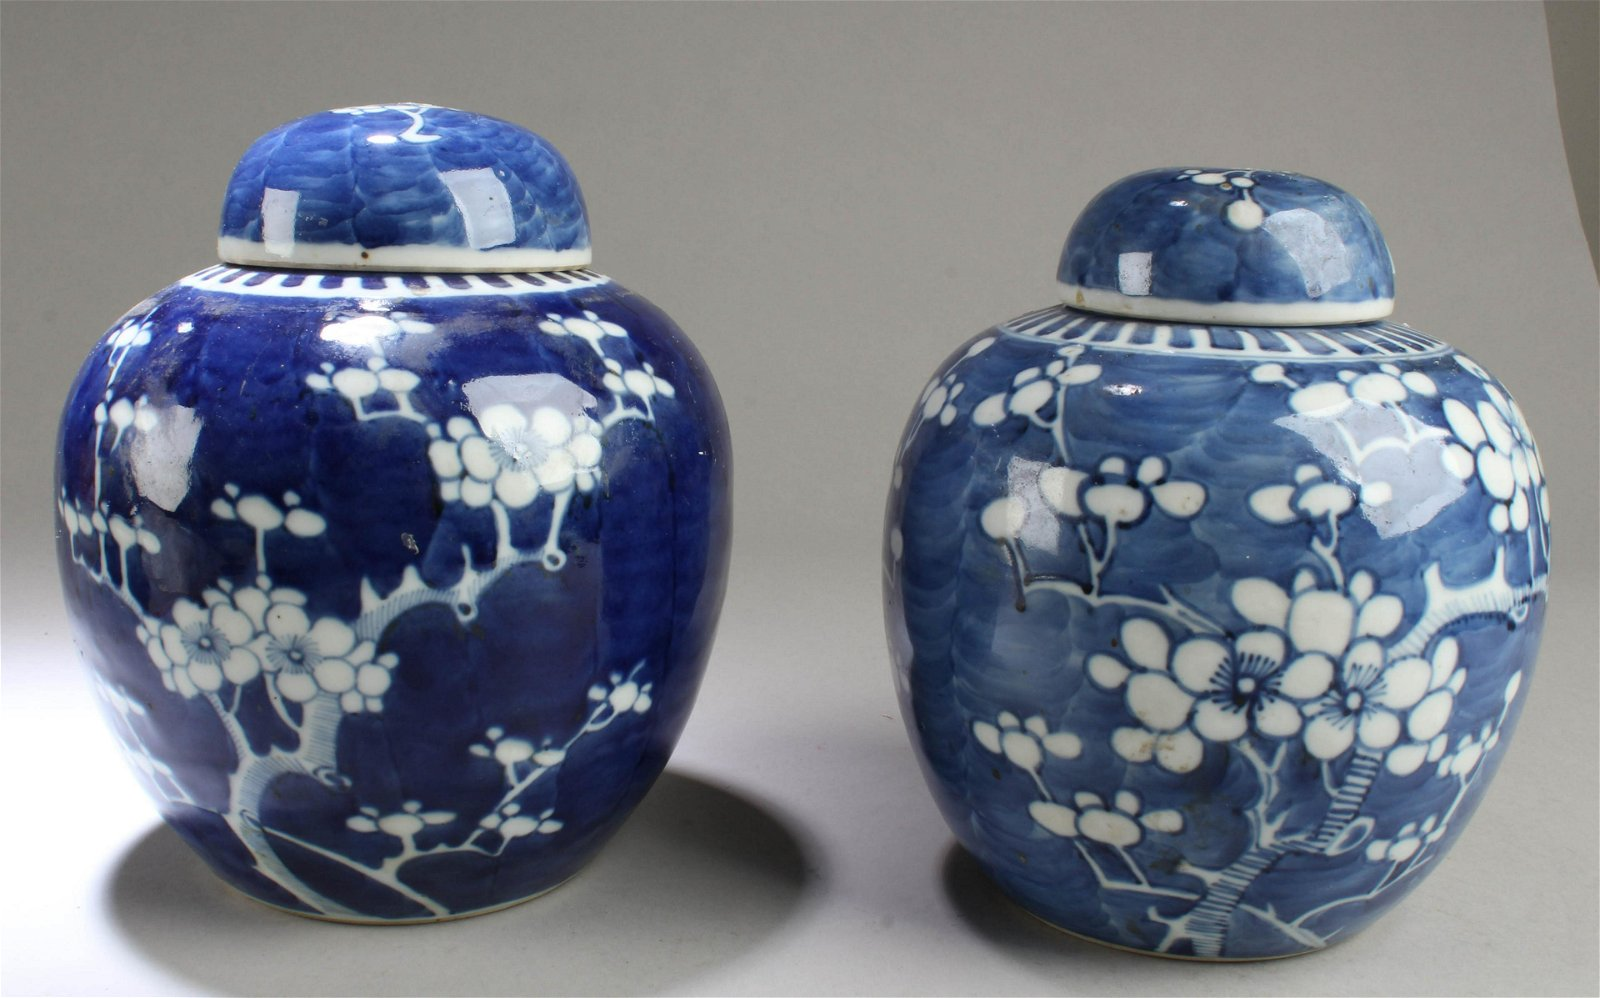 A Group of Two Antique Chinese Blue & White Porcelain